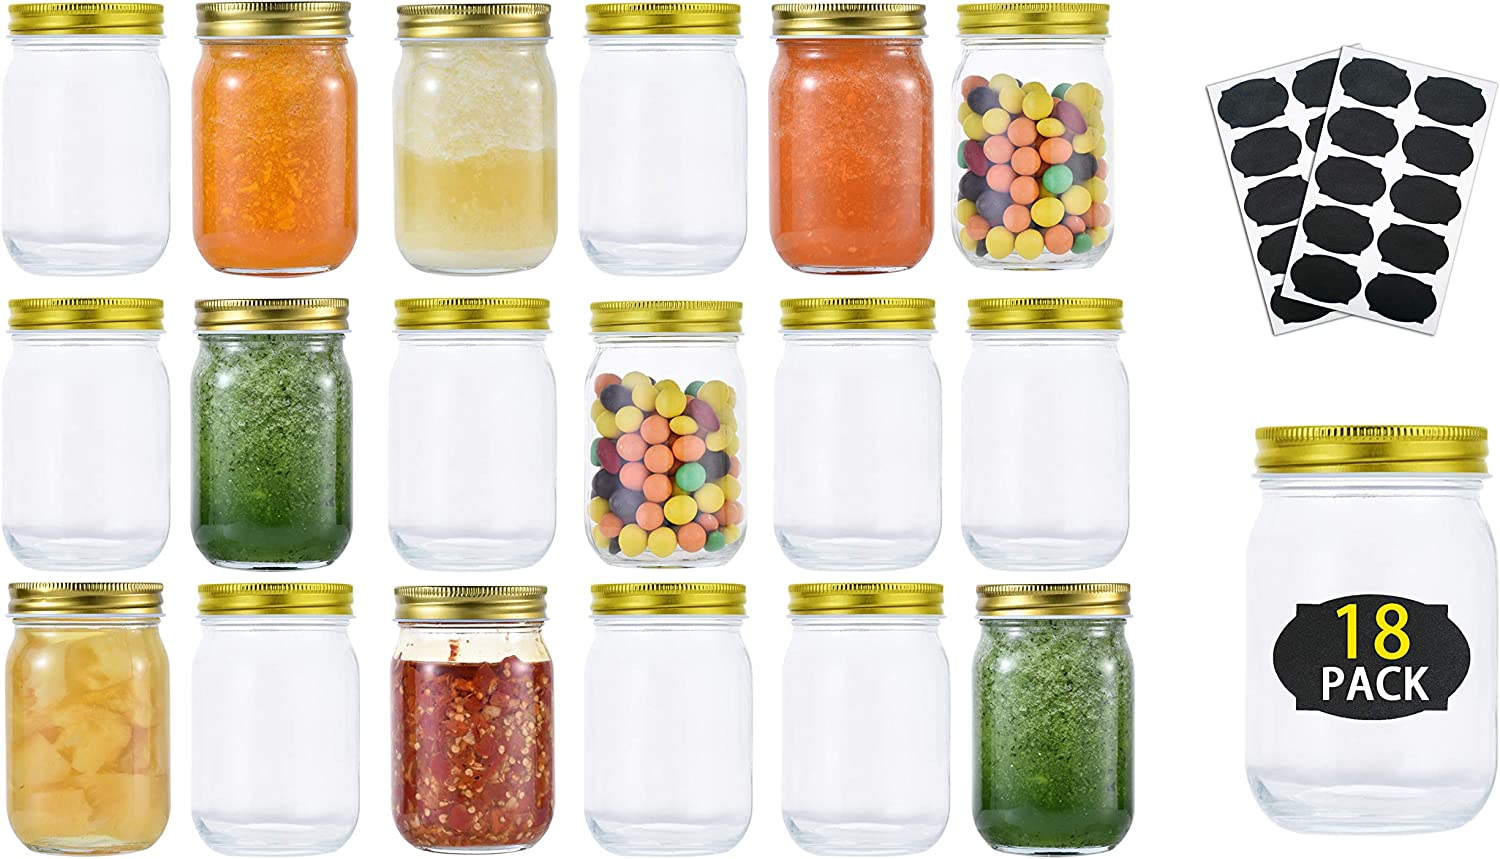 Glass Mason Jars (18 Pack) - 12 Ounce Regular Mouth Jam Jelly Jars, Metal Airtight Lid, Pickling, Preserving, Decorating, Canning Jar, Craft and Dry Food Storage With 20 Labels